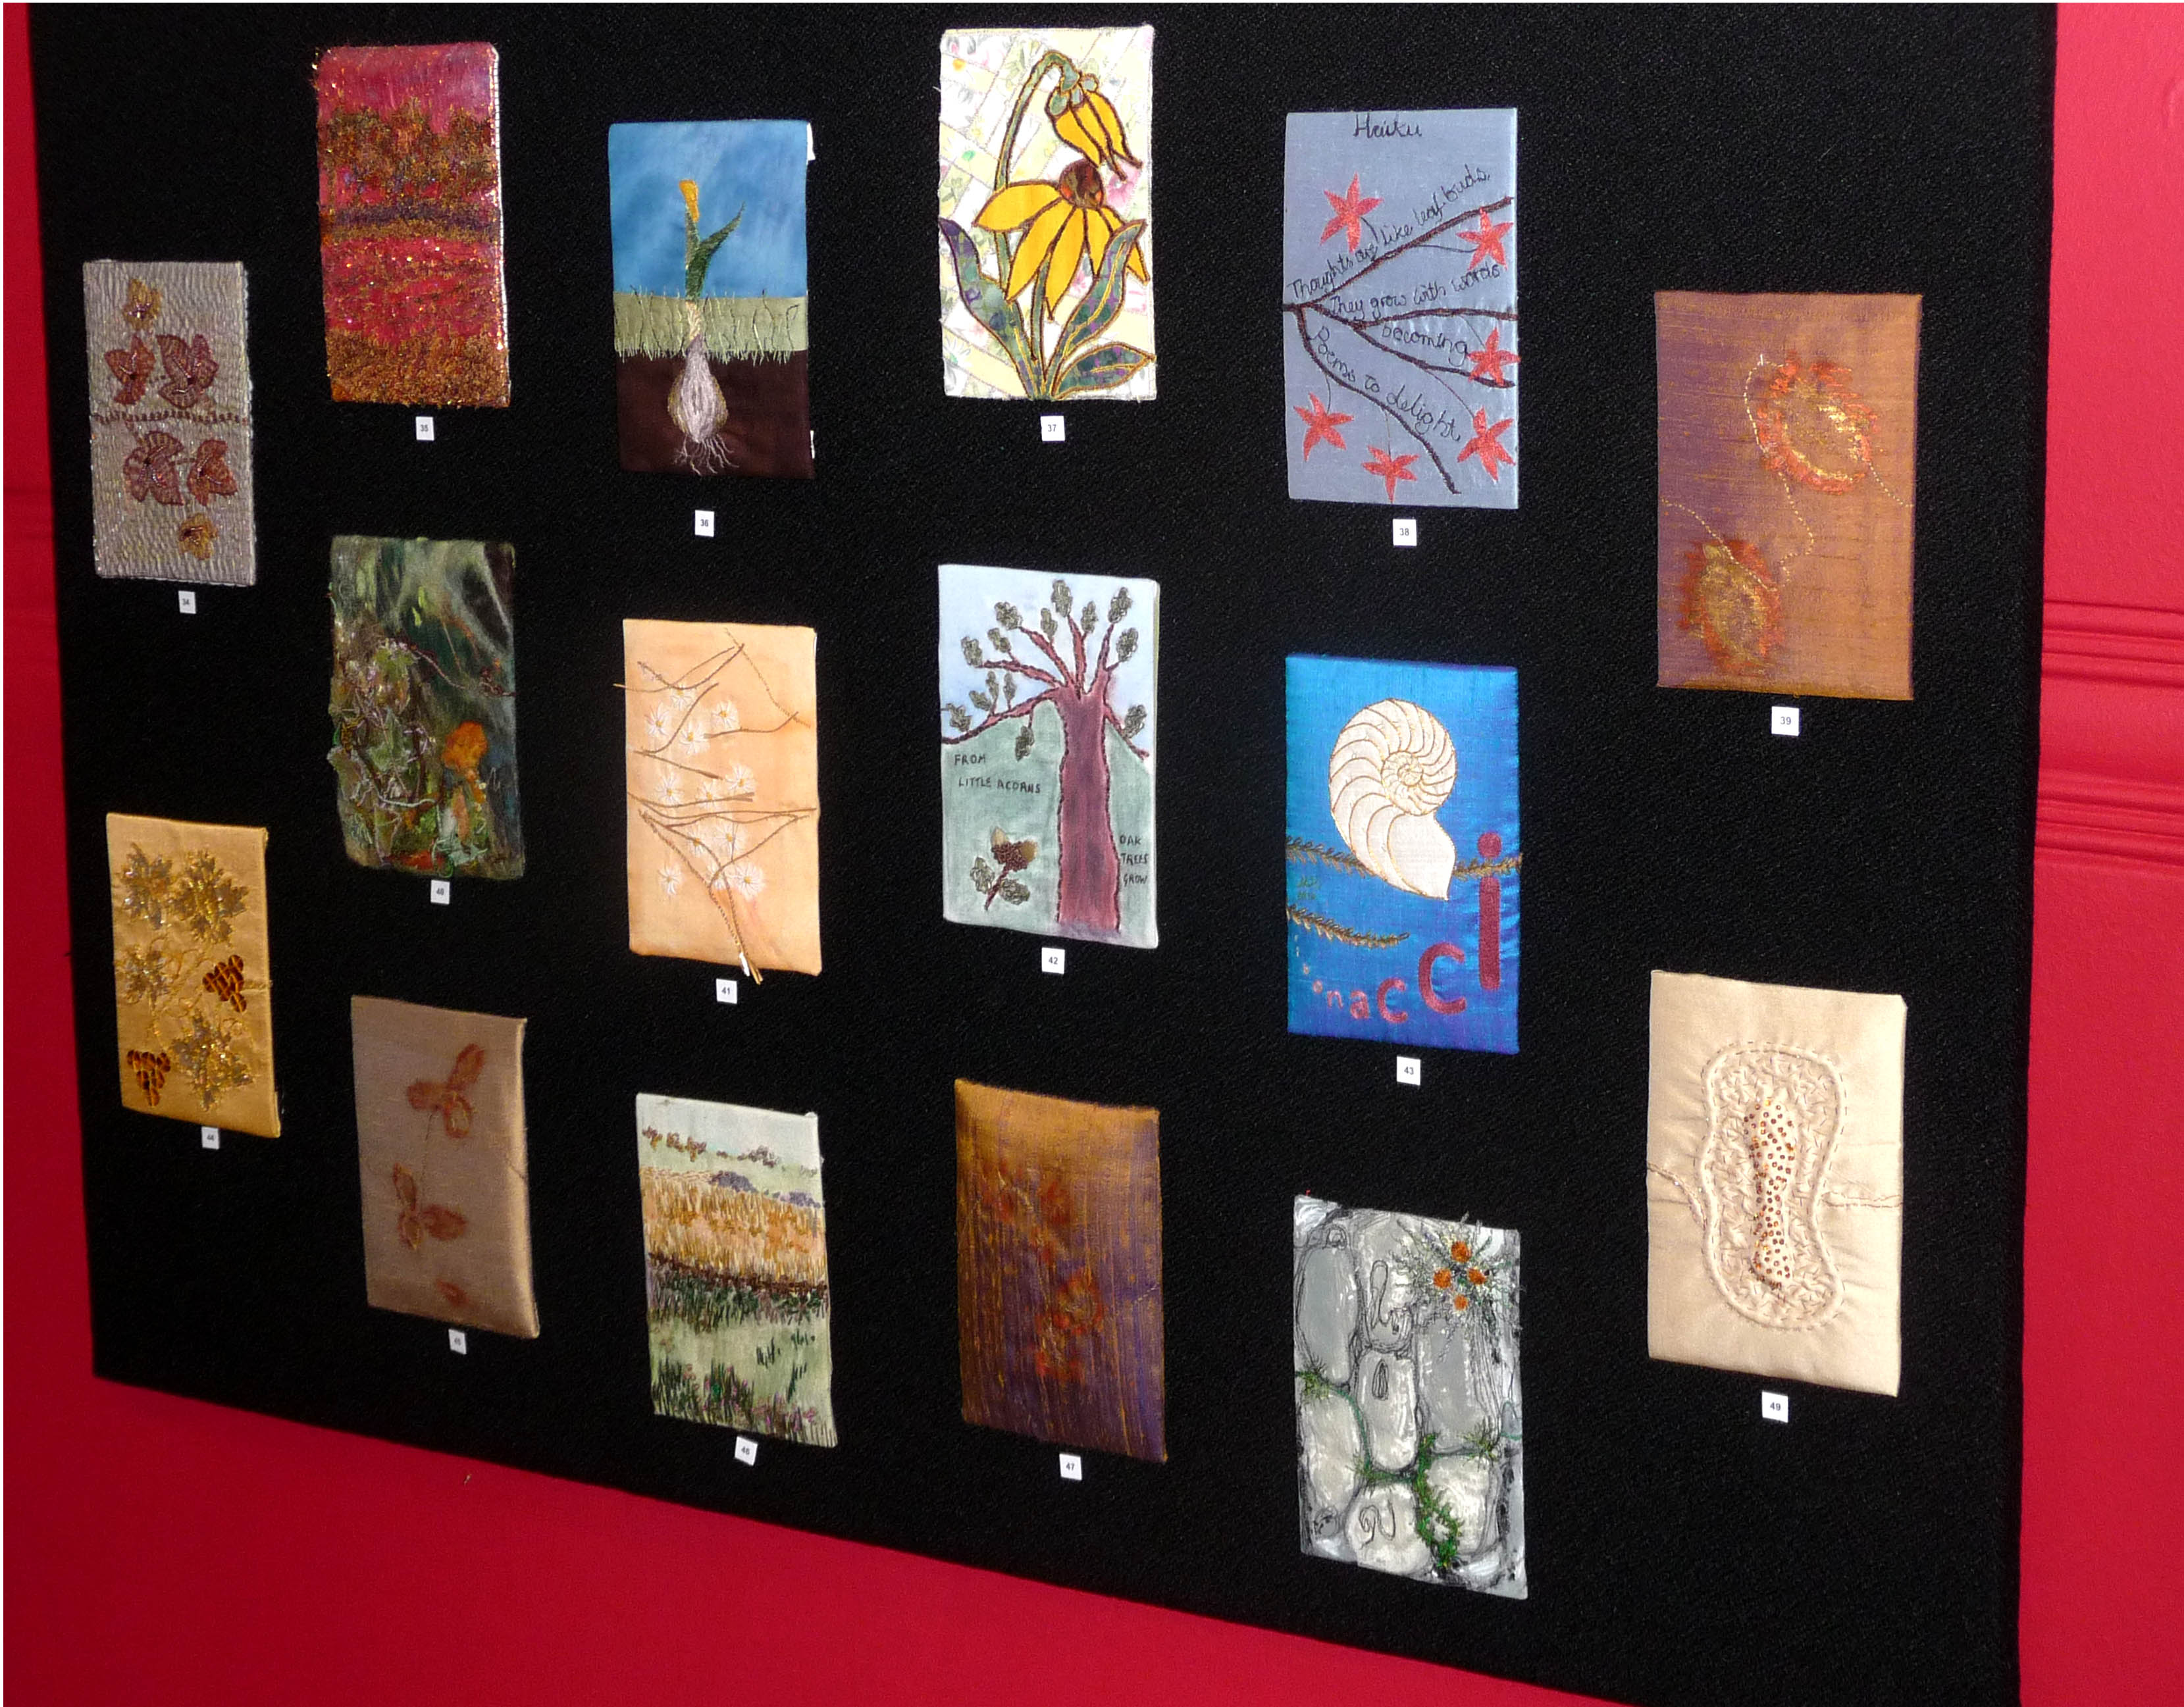 selection of postcards in GROWTH exhibition, Victoria Gallery, 2014